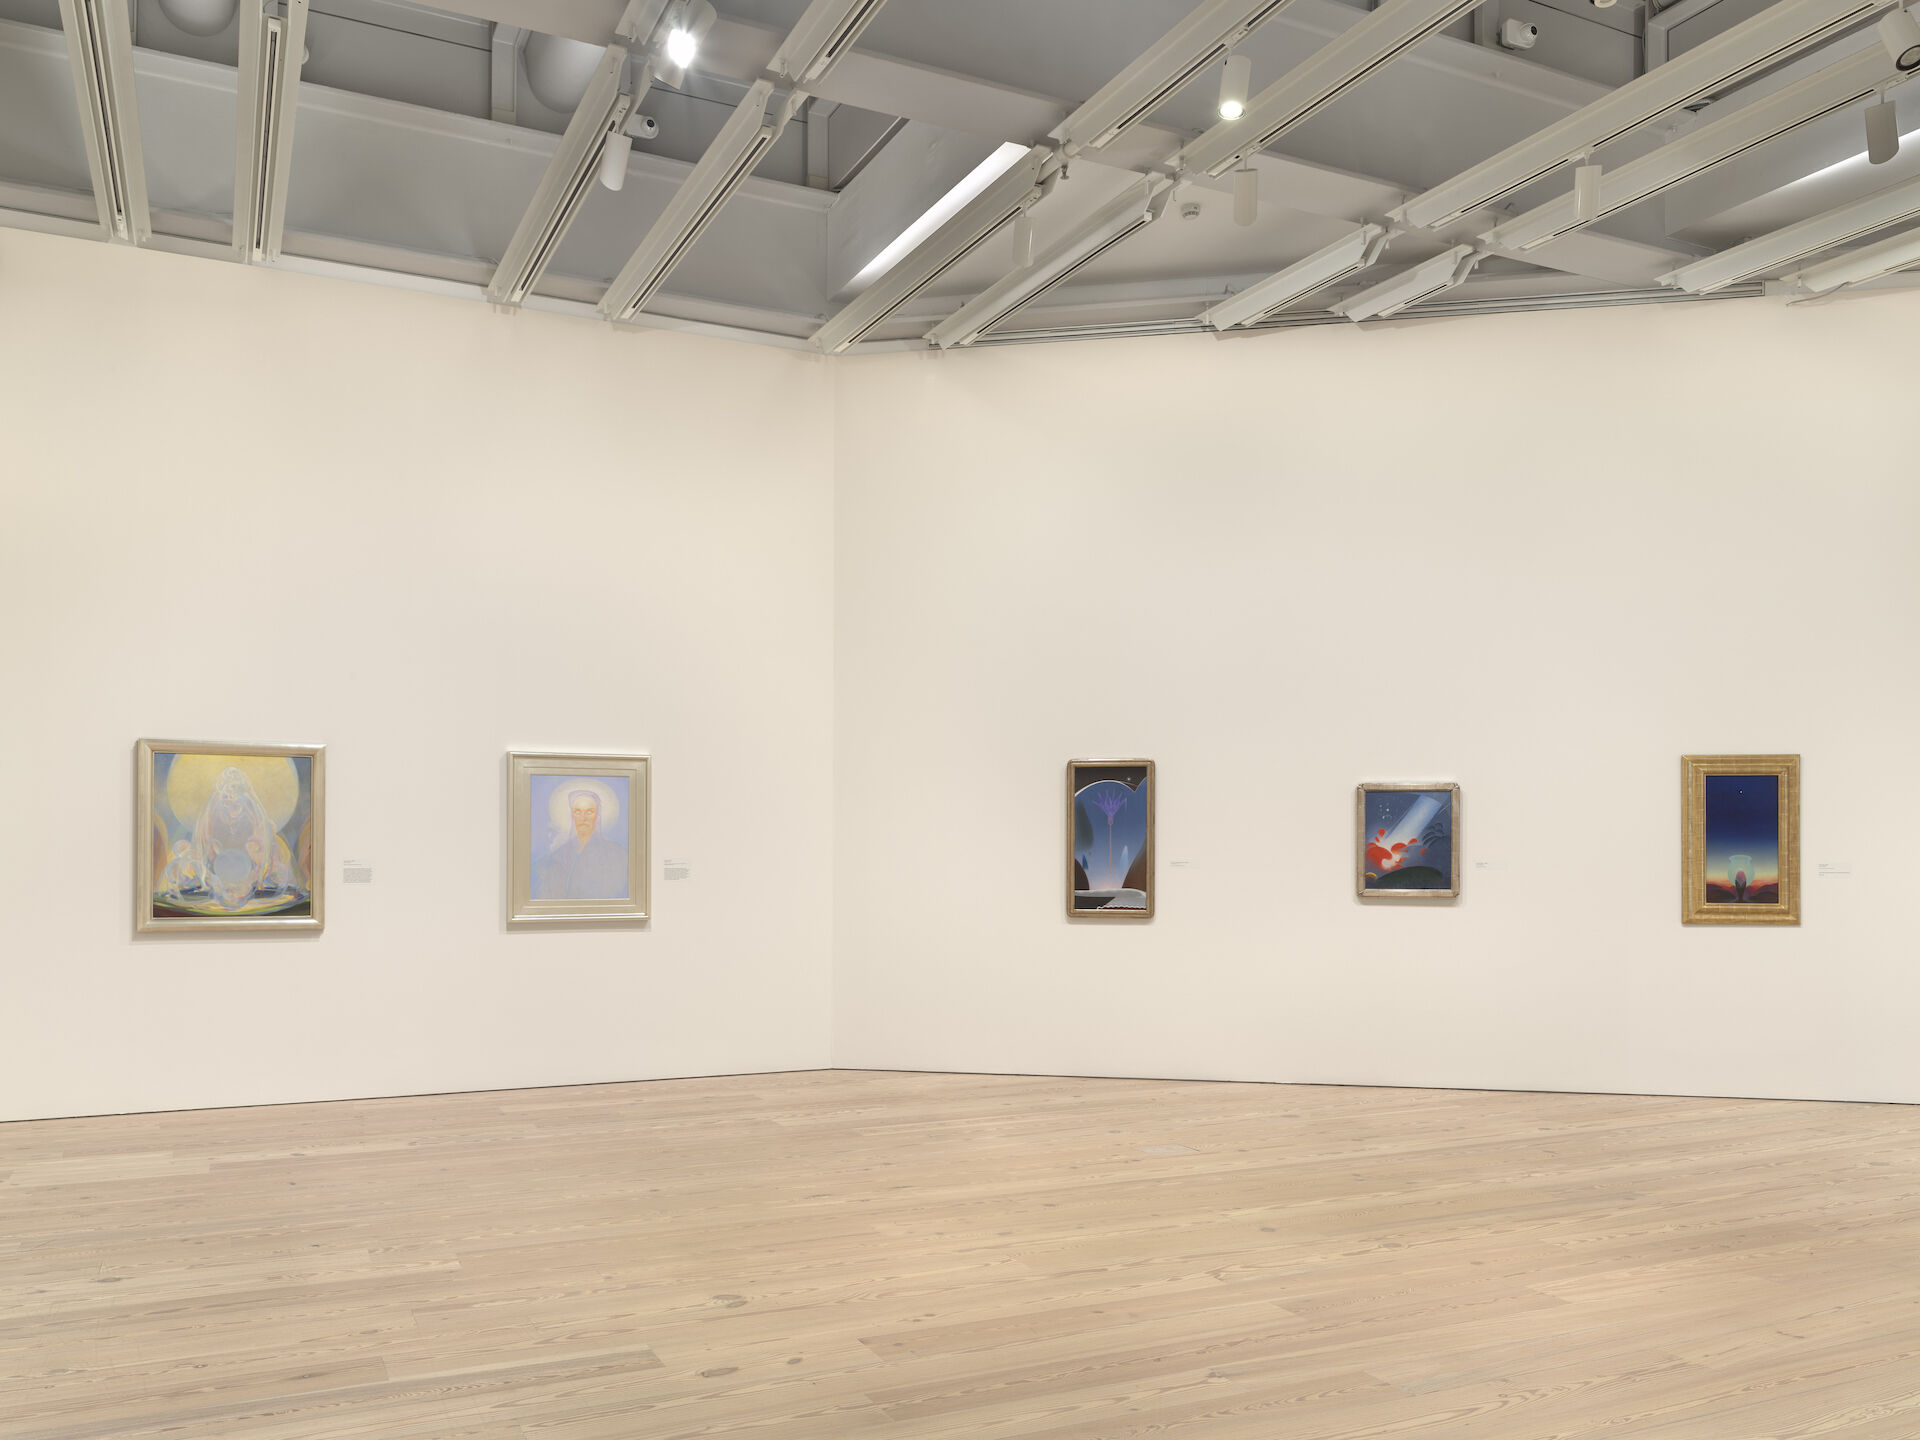 White walls meet at a corner in the middle of the image. Paintings by Agnes Pelton appear on the walls, from left to right: The Fountains, 1926; Intimation, 1933; Lotus for Lida (Egyptian Dawn), 1930; Red and Blue, c. 1938; Star Gazer, 1929.